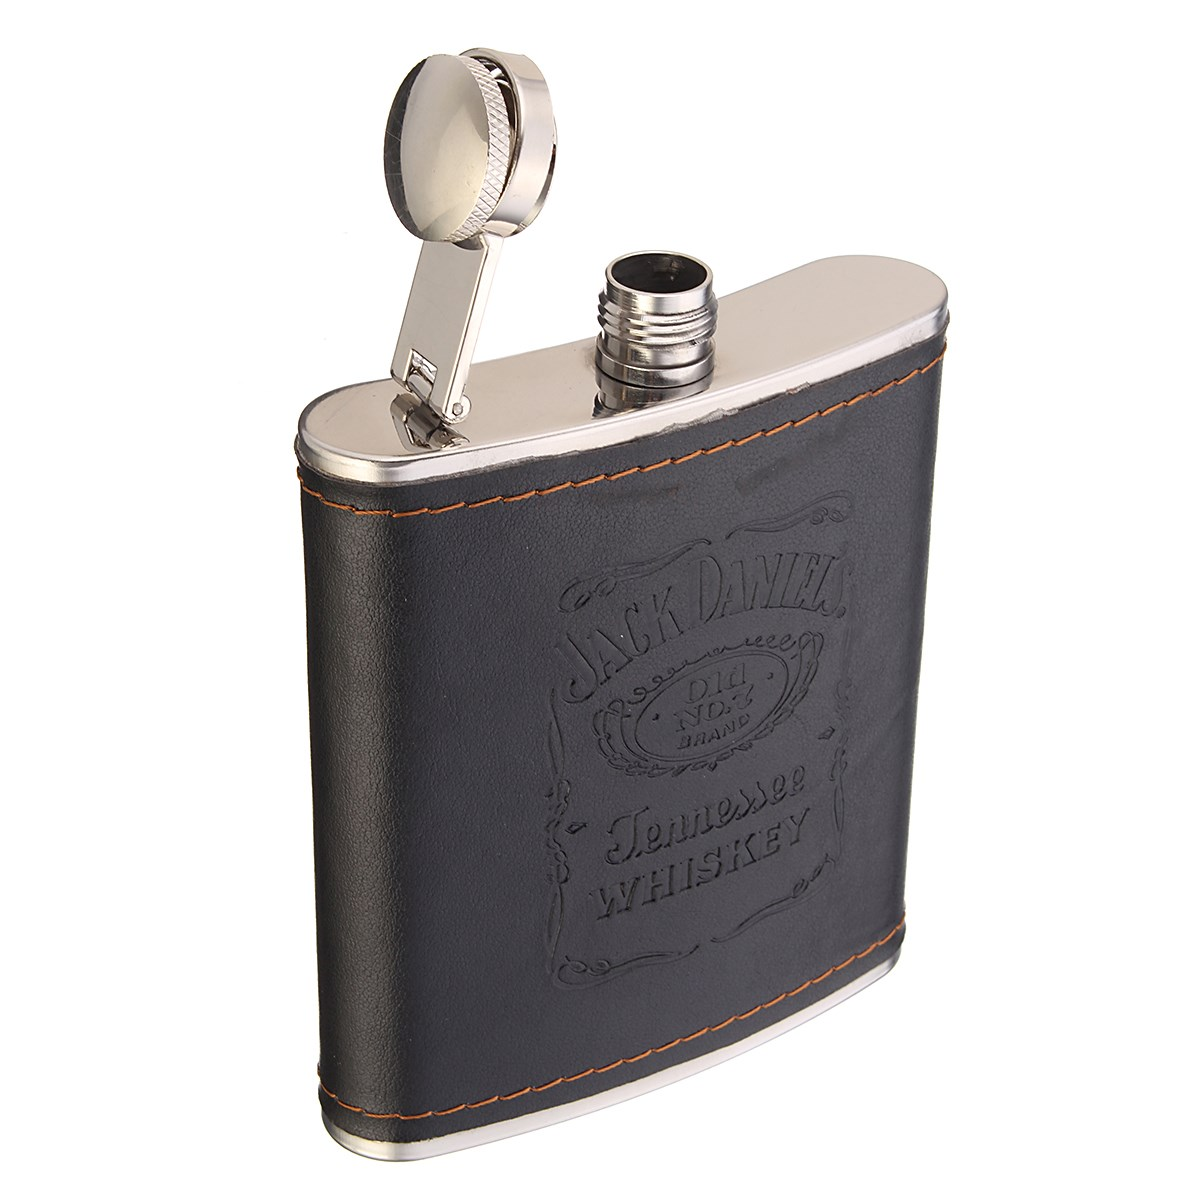 7 Ounce Portable Stainless Steel Hip Flask Whiskey Flask Bottle Mug Engraving Wisky Jerry Can outdoor camping travel tableware